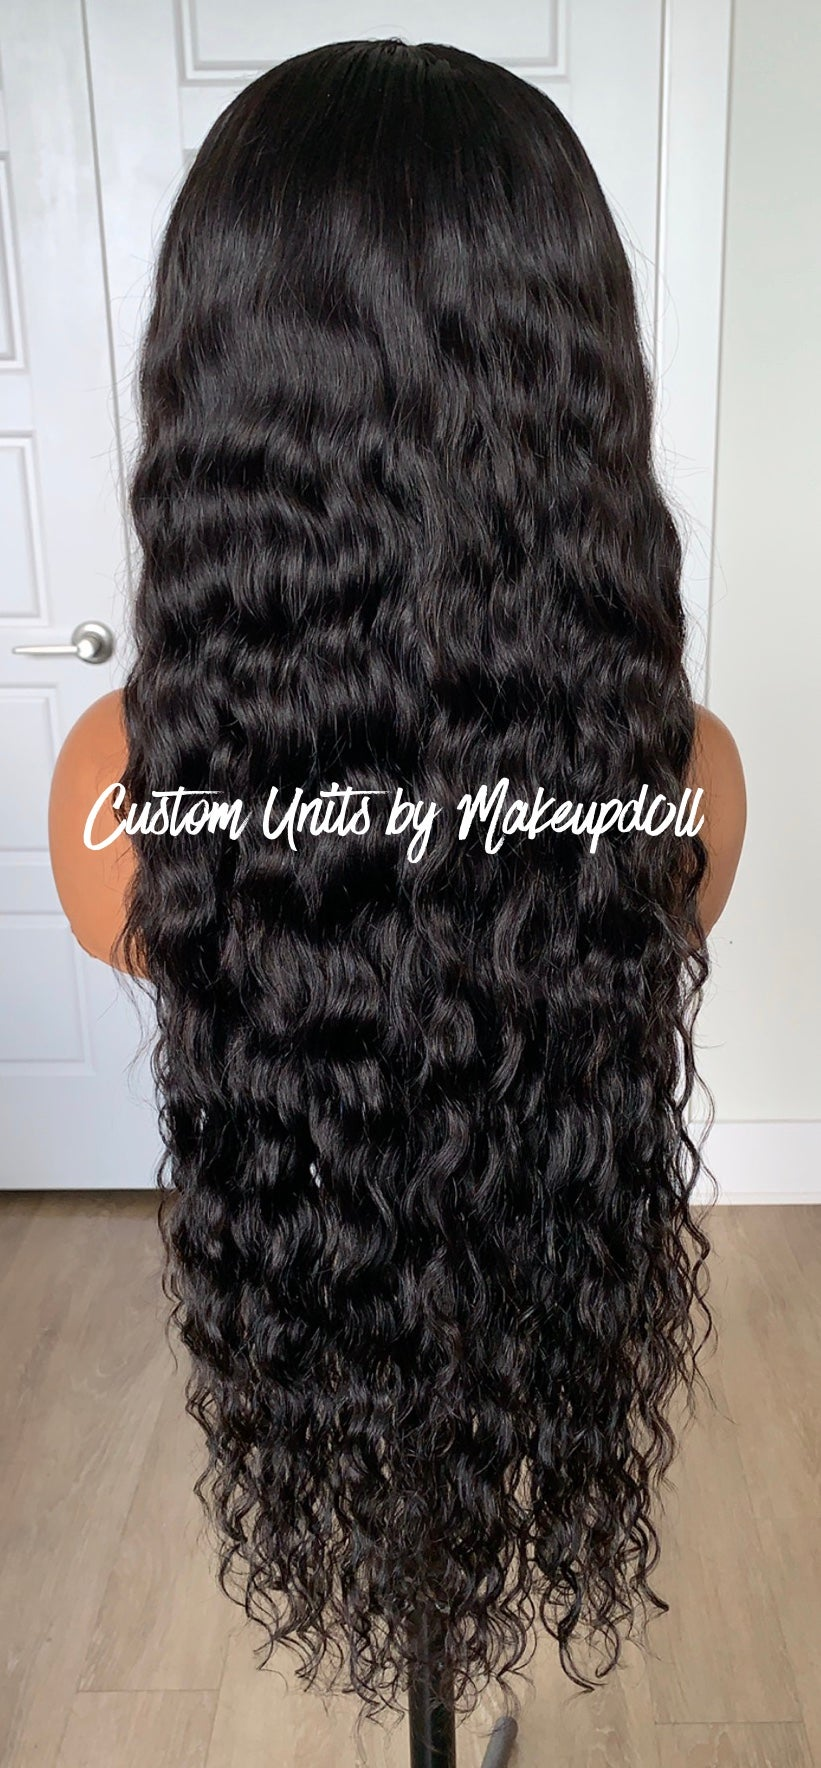 "Image of Cambodian Natural Wave 28"" 5x5 Lace Closure Wig!"